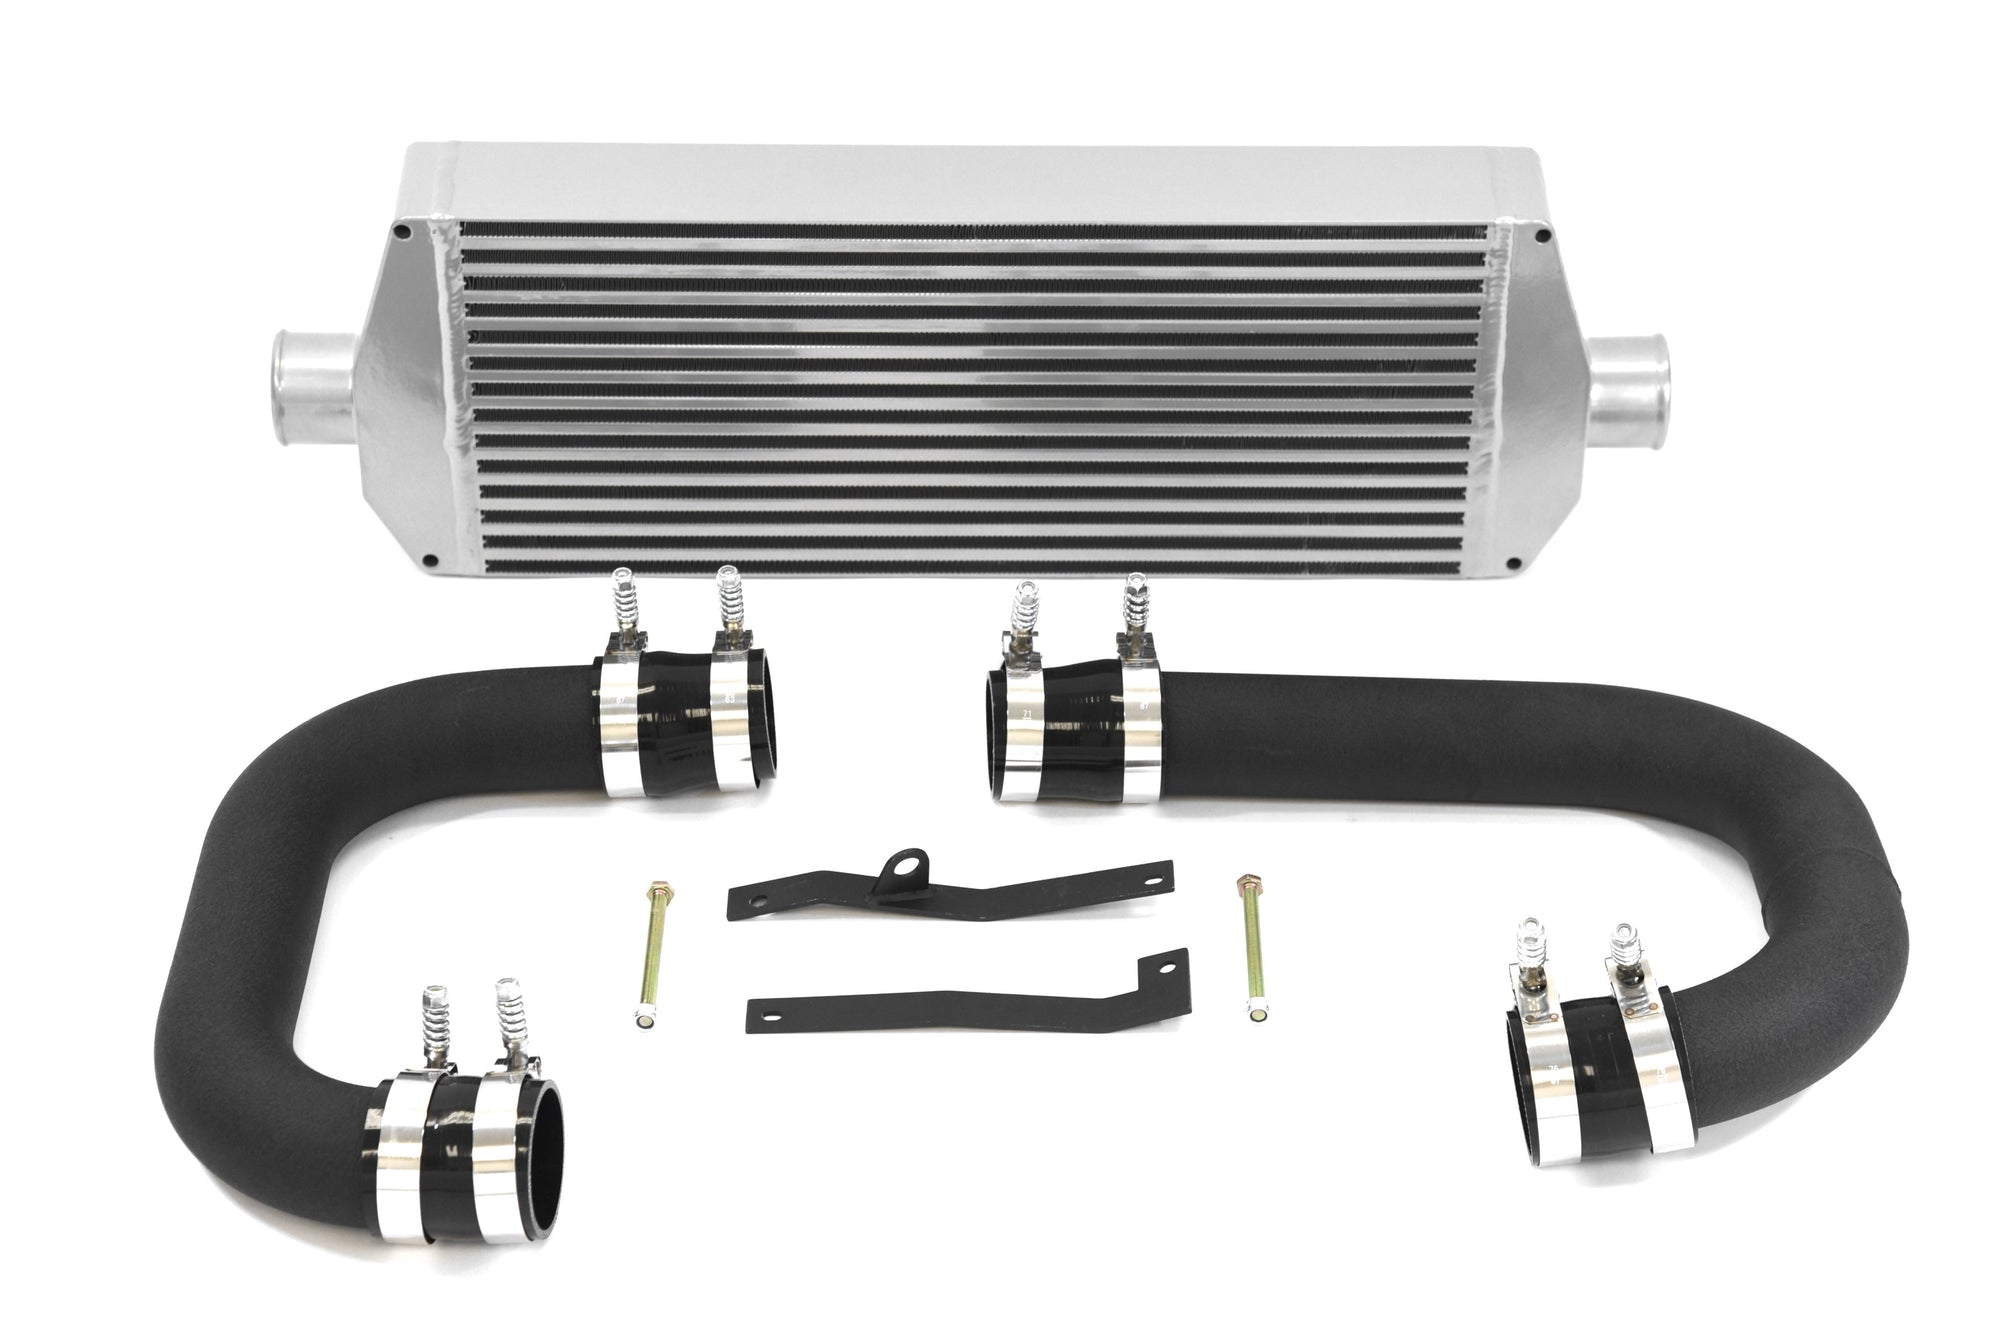 MK7 GTI / GOLF R FMIC KIT - ARM Motorsports